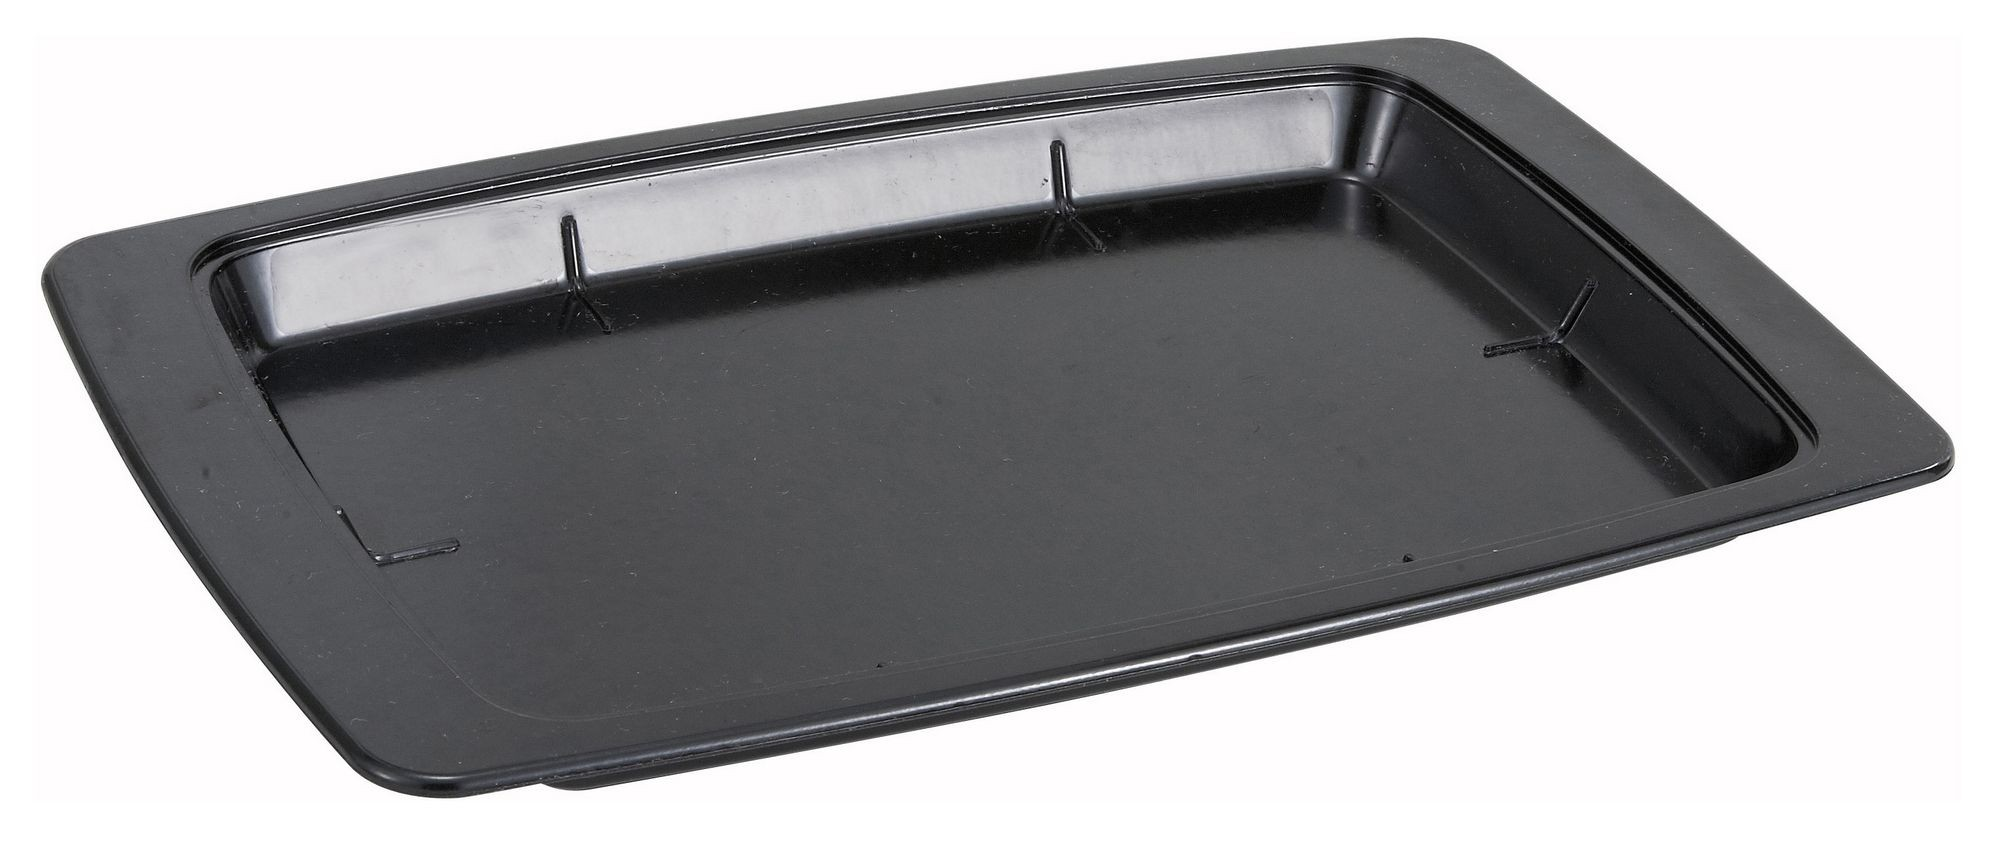 Oblong Underliner For Stainless Steel Sizzling Platter